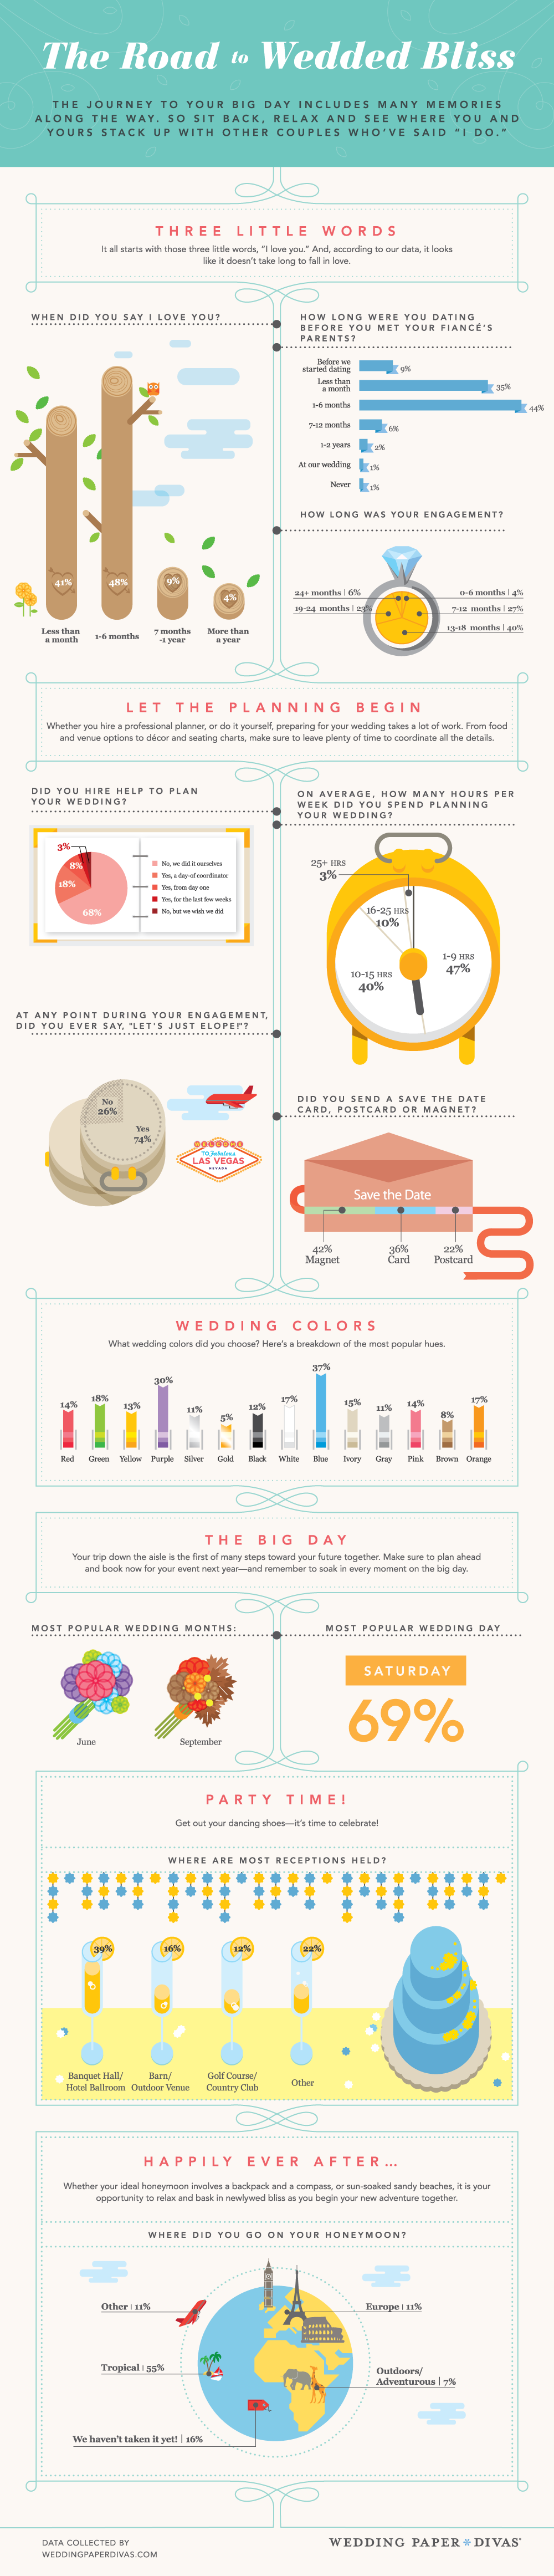 Infographic: Wedding Paper Divas Road to Bliss